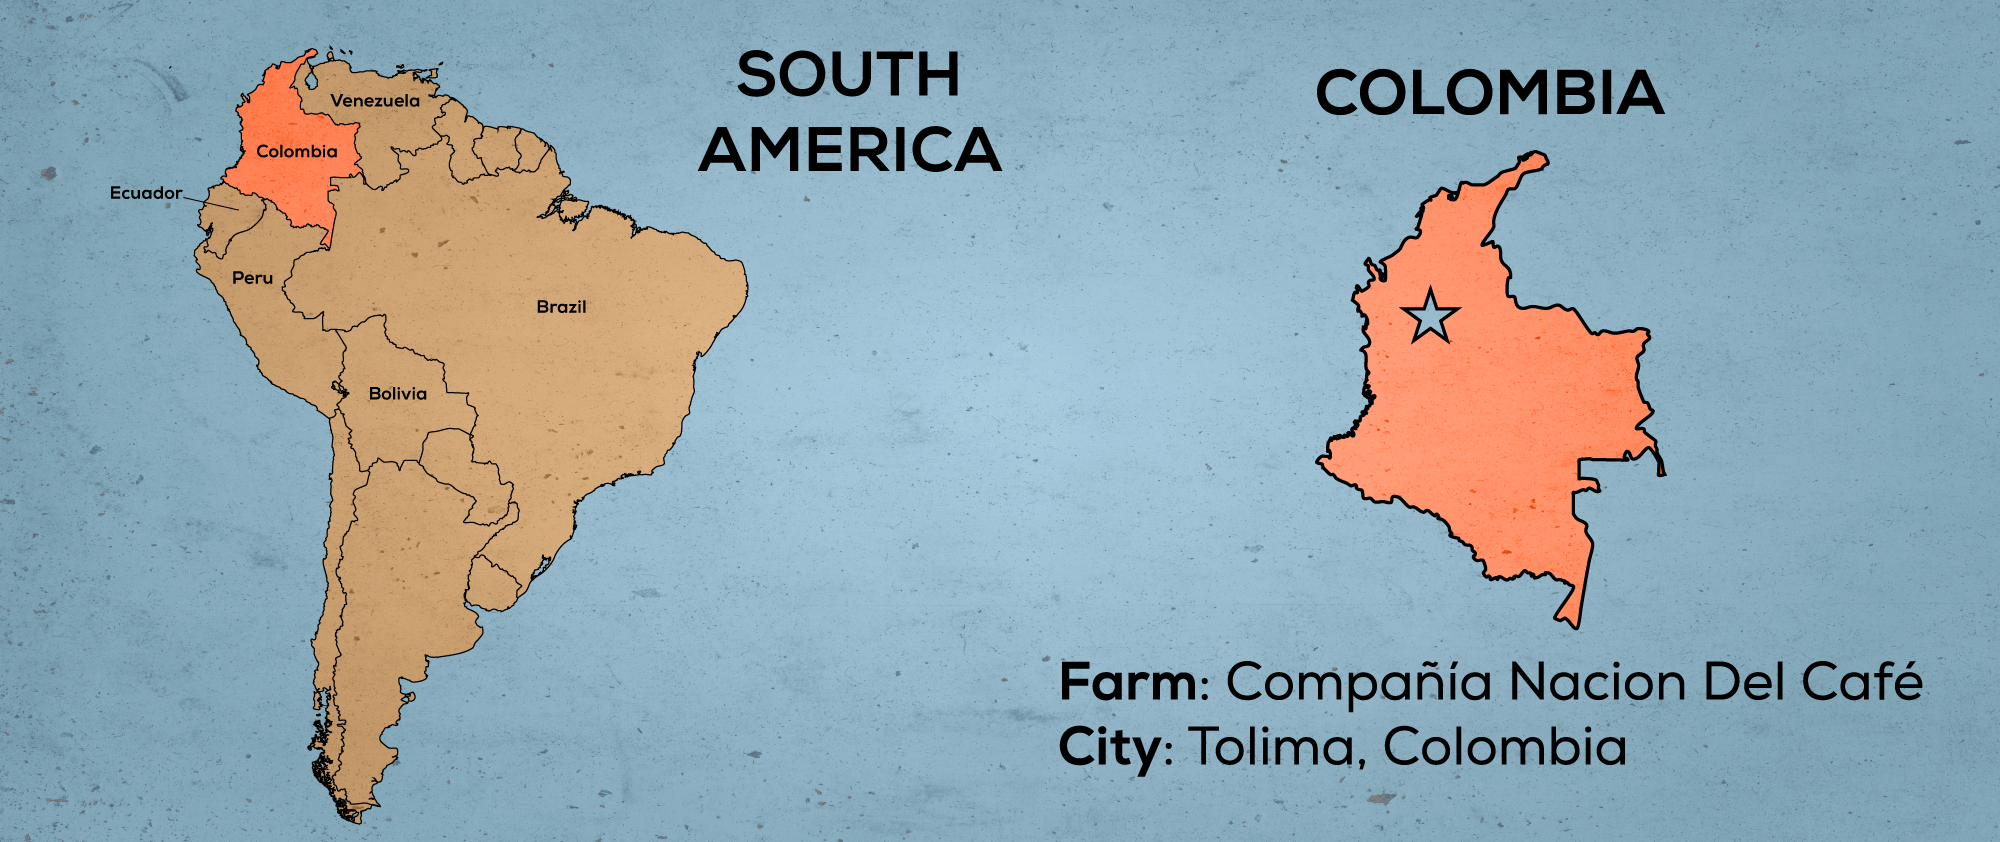 Map of South America & Colombia